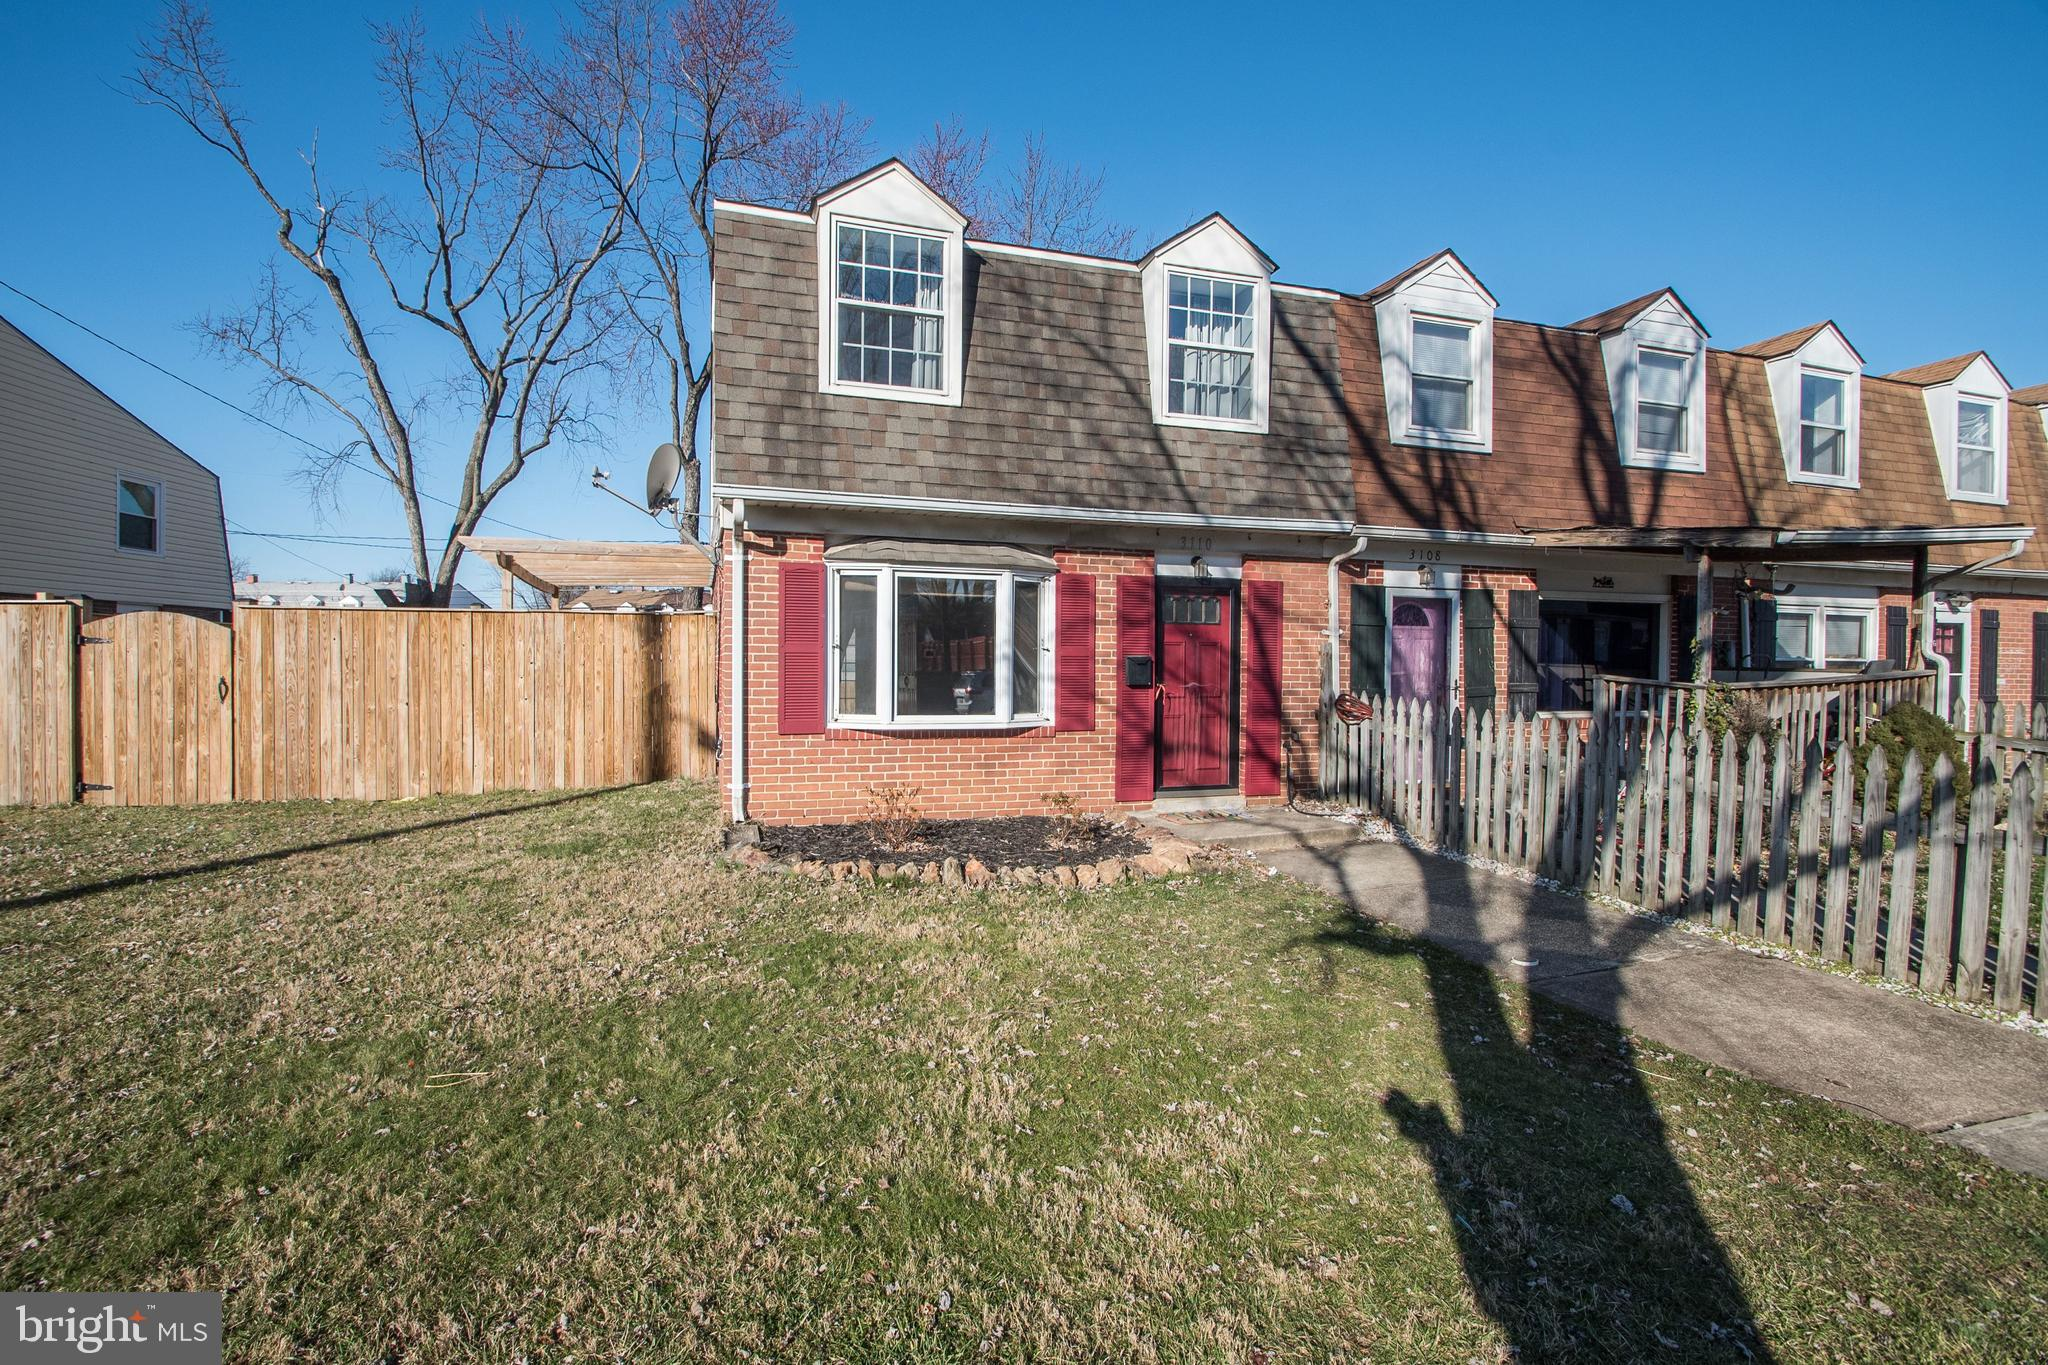 3110 RYERSON Cir, Halethorpe, MD, 21227